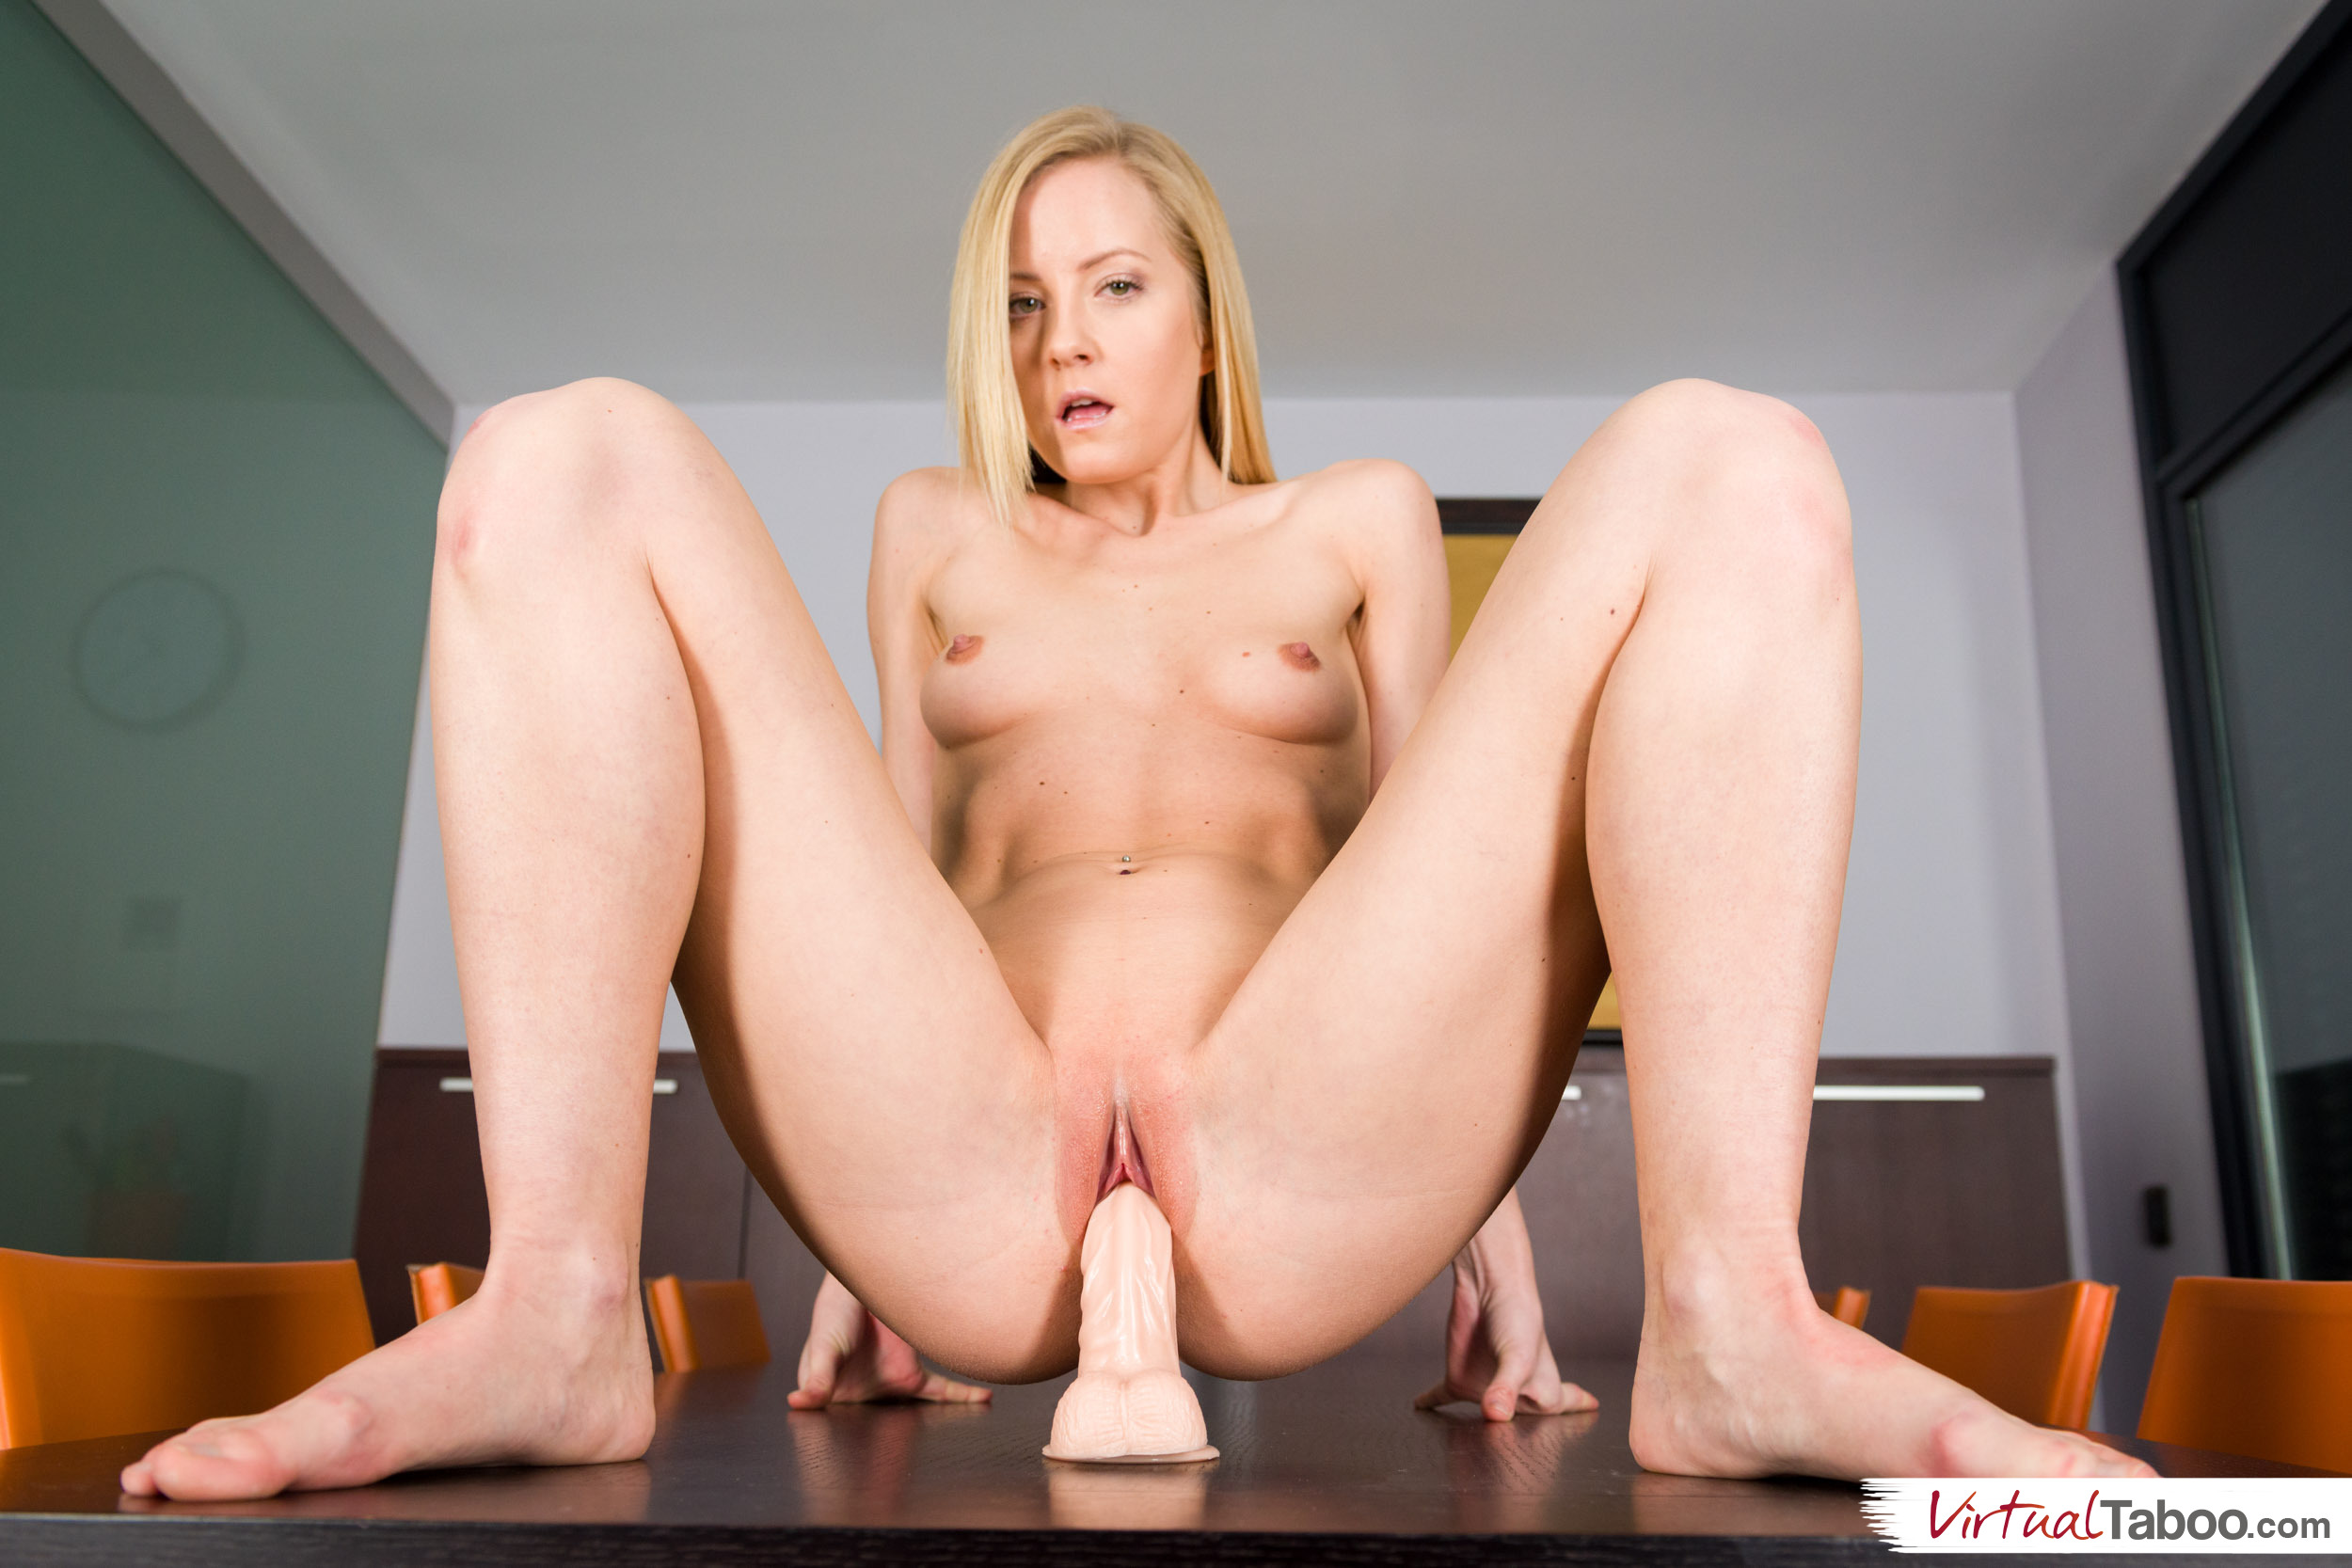 which porn star has the biggest cock